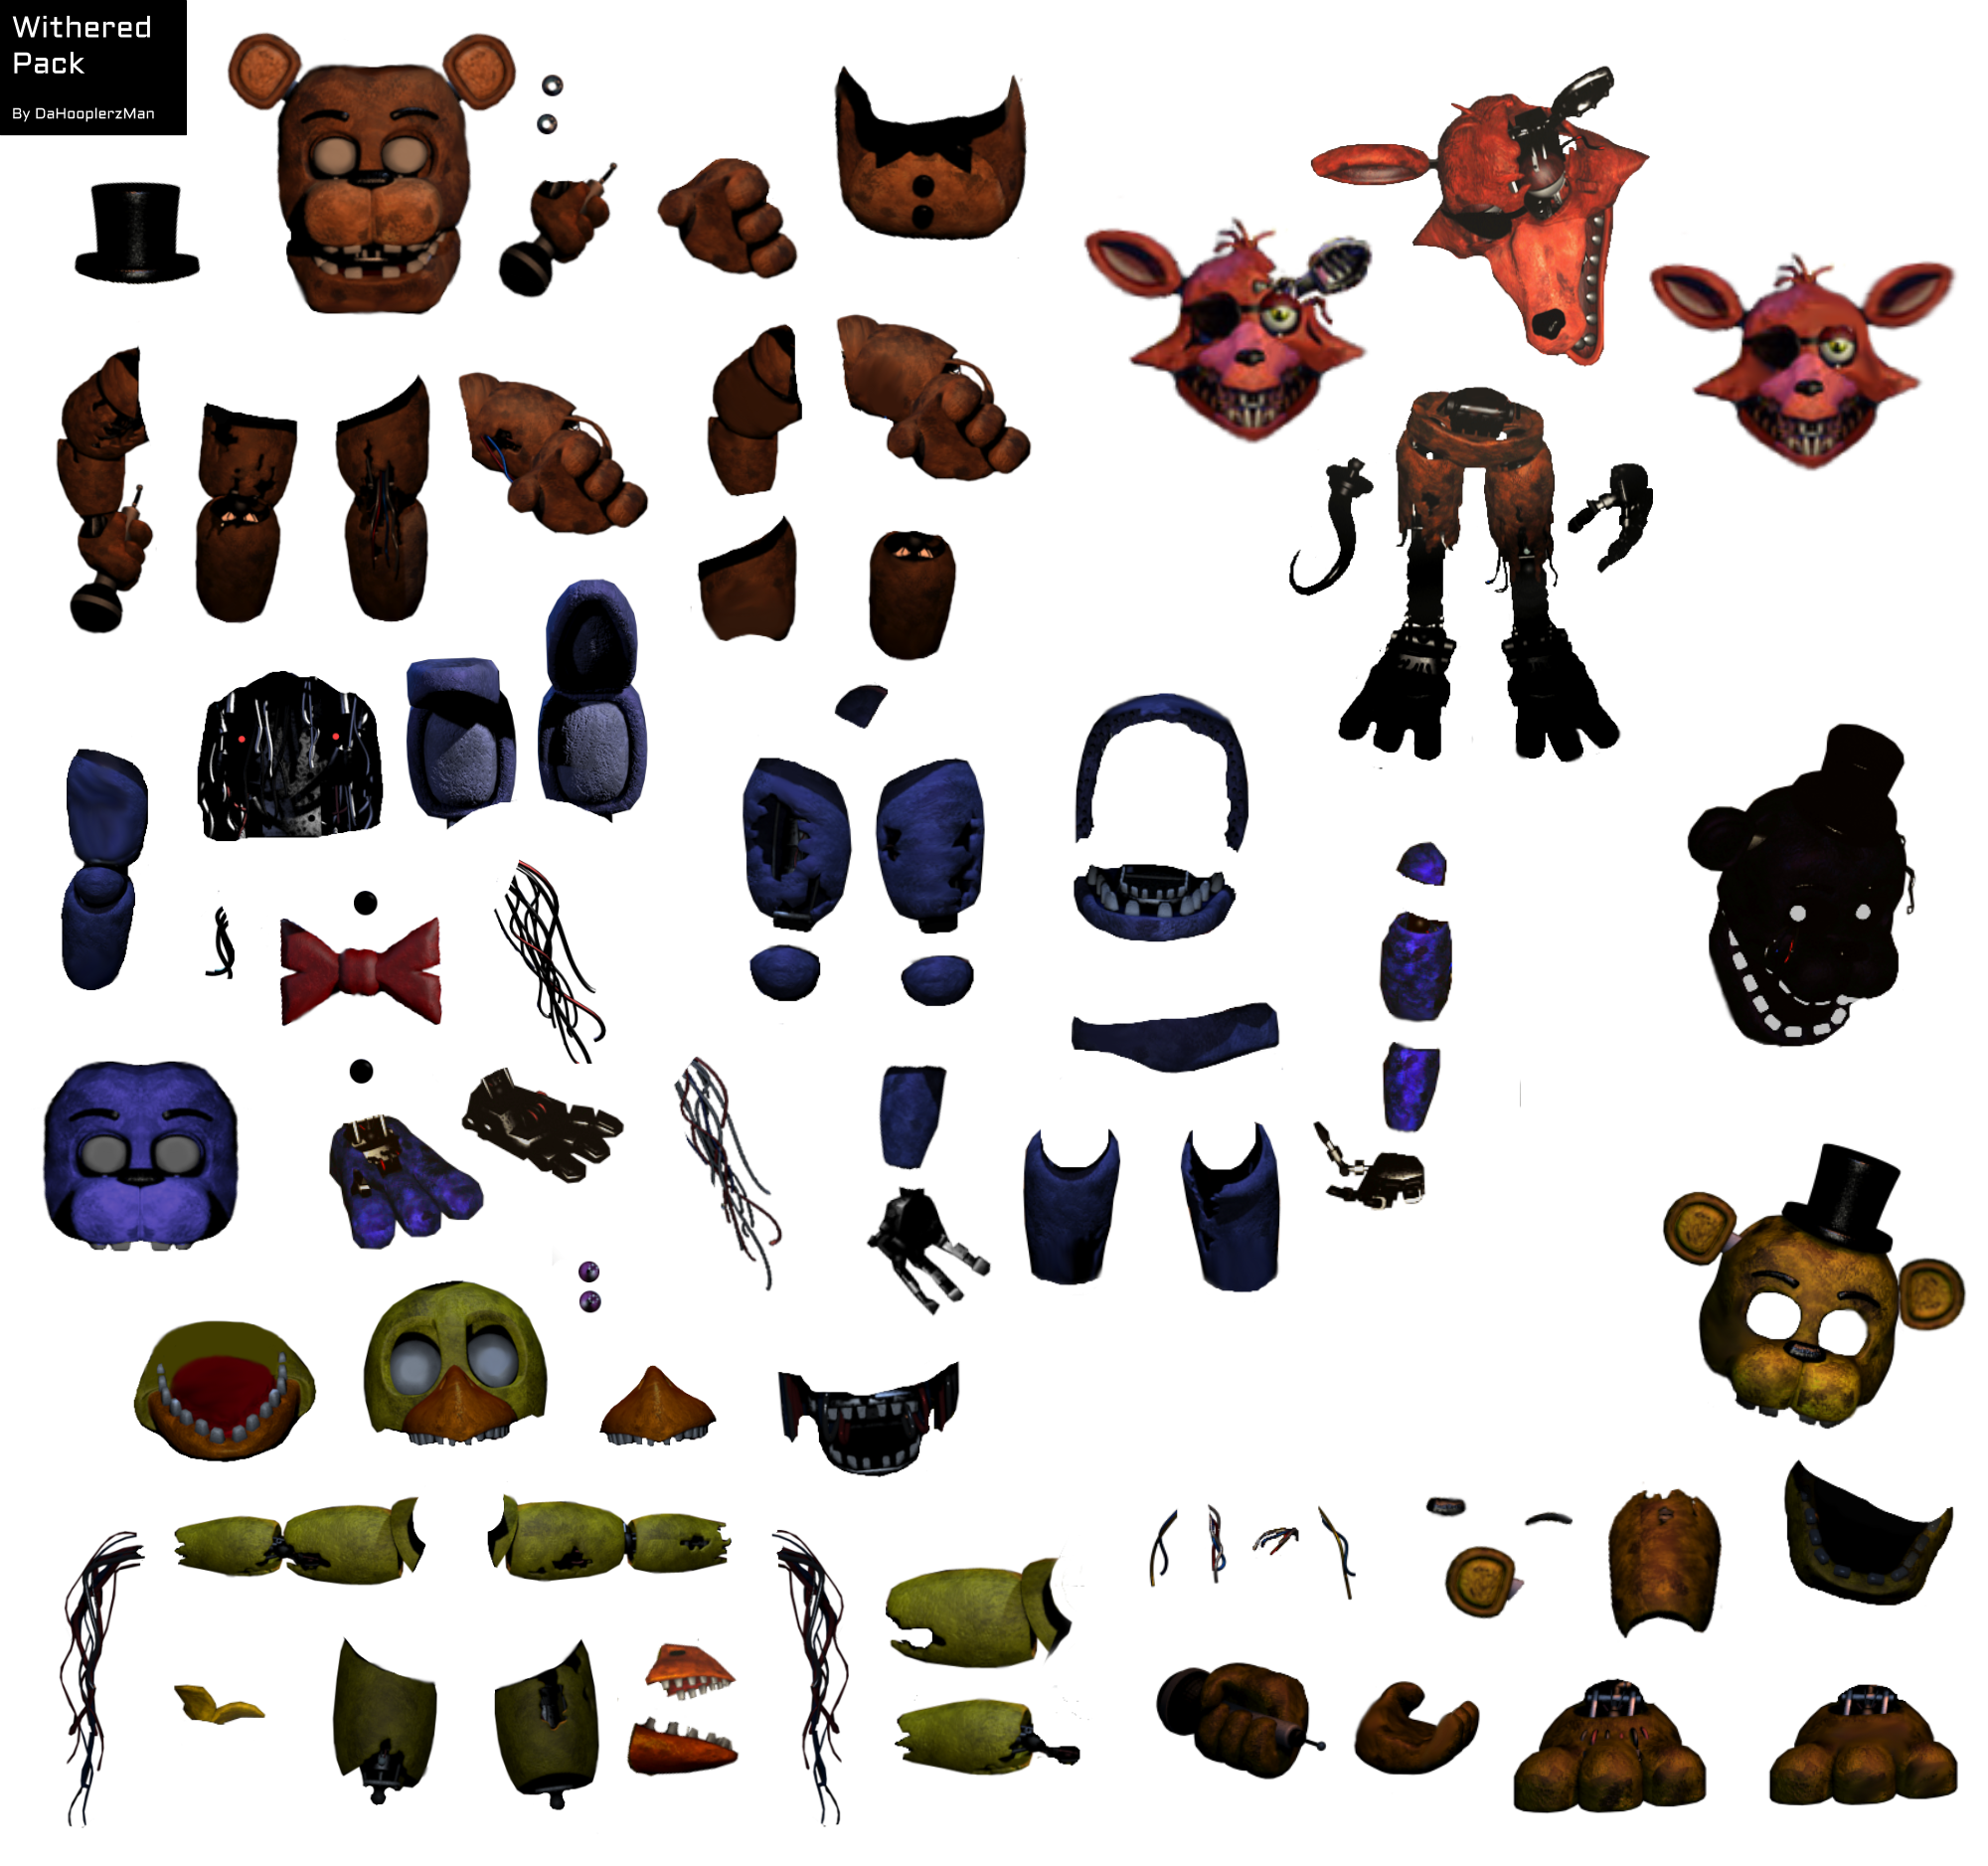 fnaf withered animatronic resource pack by dahooplerzman on deviantart